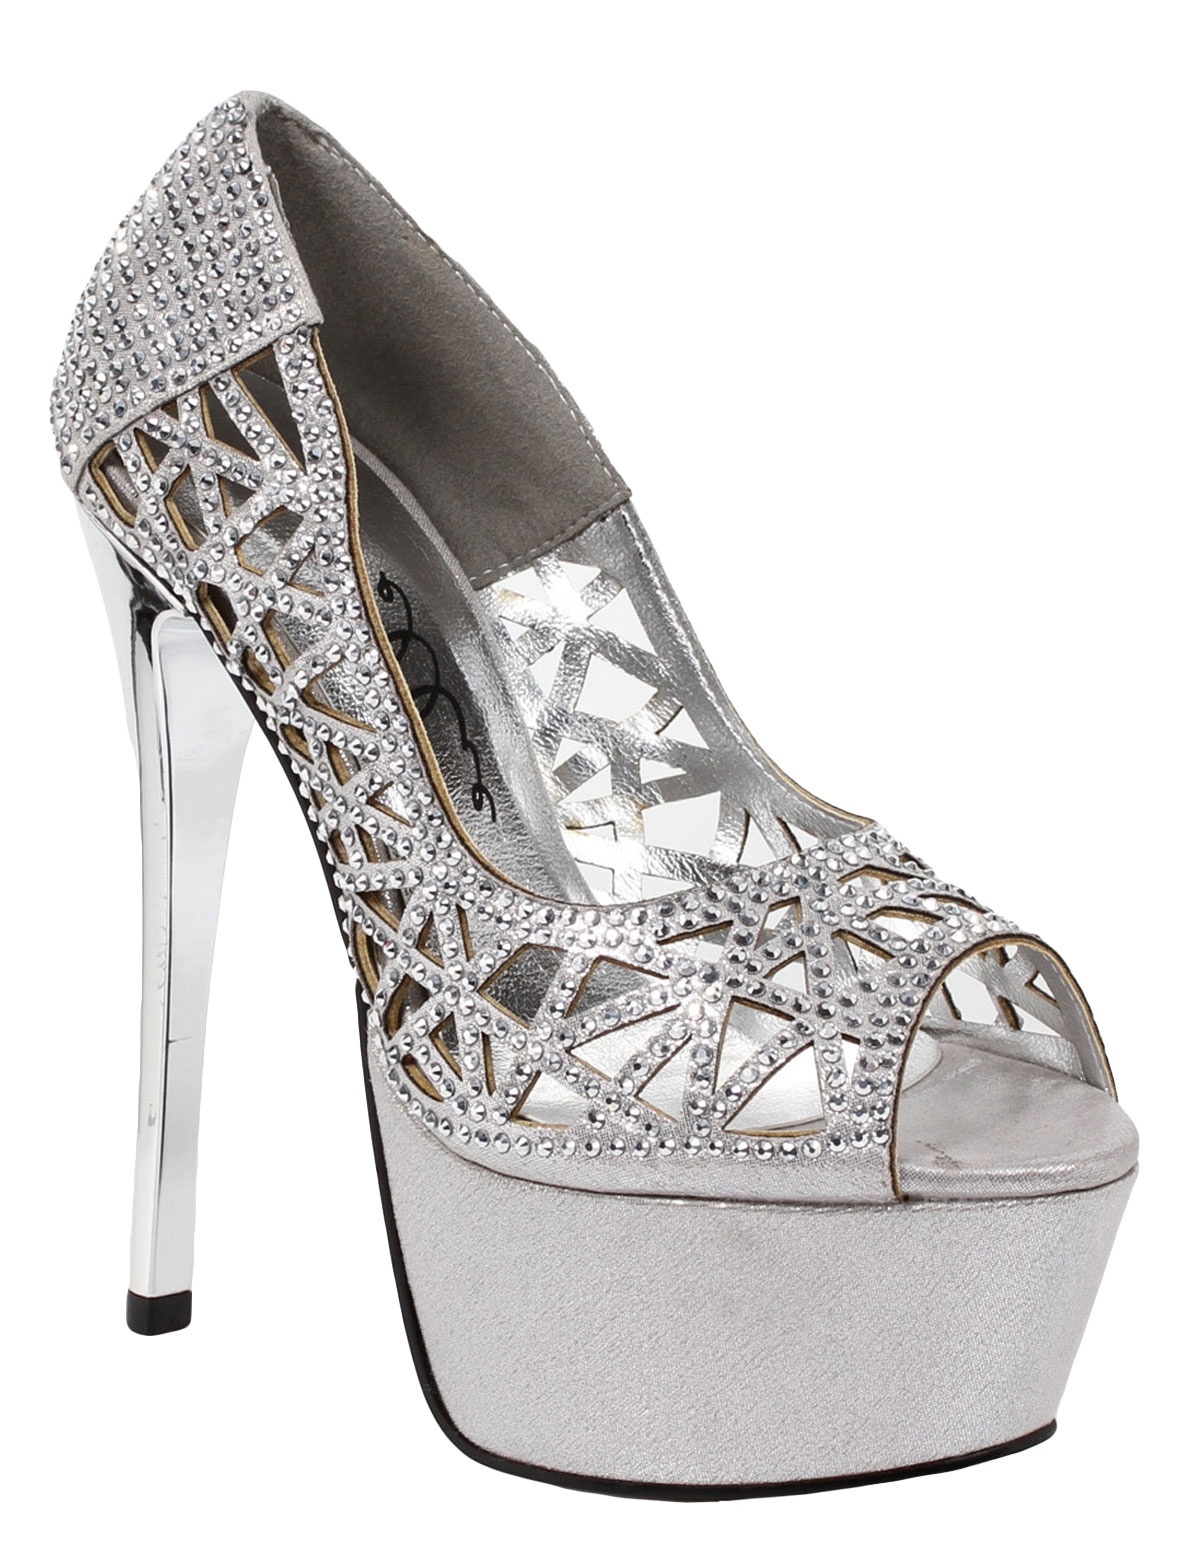 Rosafina Shoes - 6 Inch